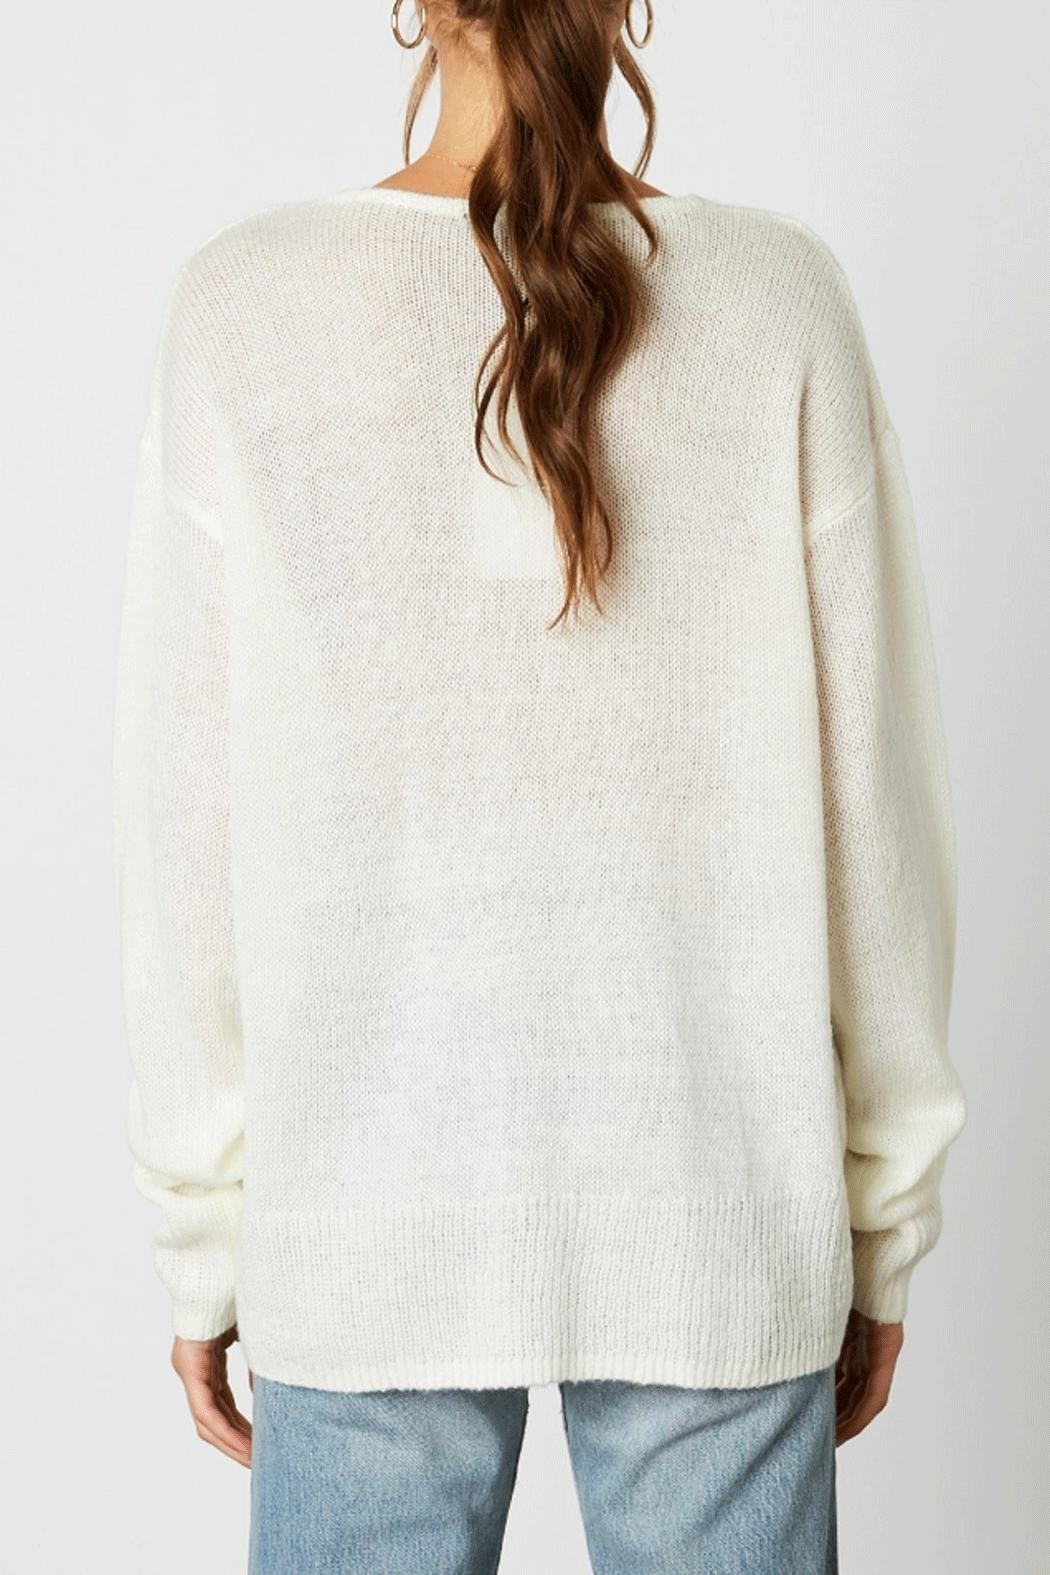 Cotton Candy Deep V-Neck Sweater - Side Cropped Image